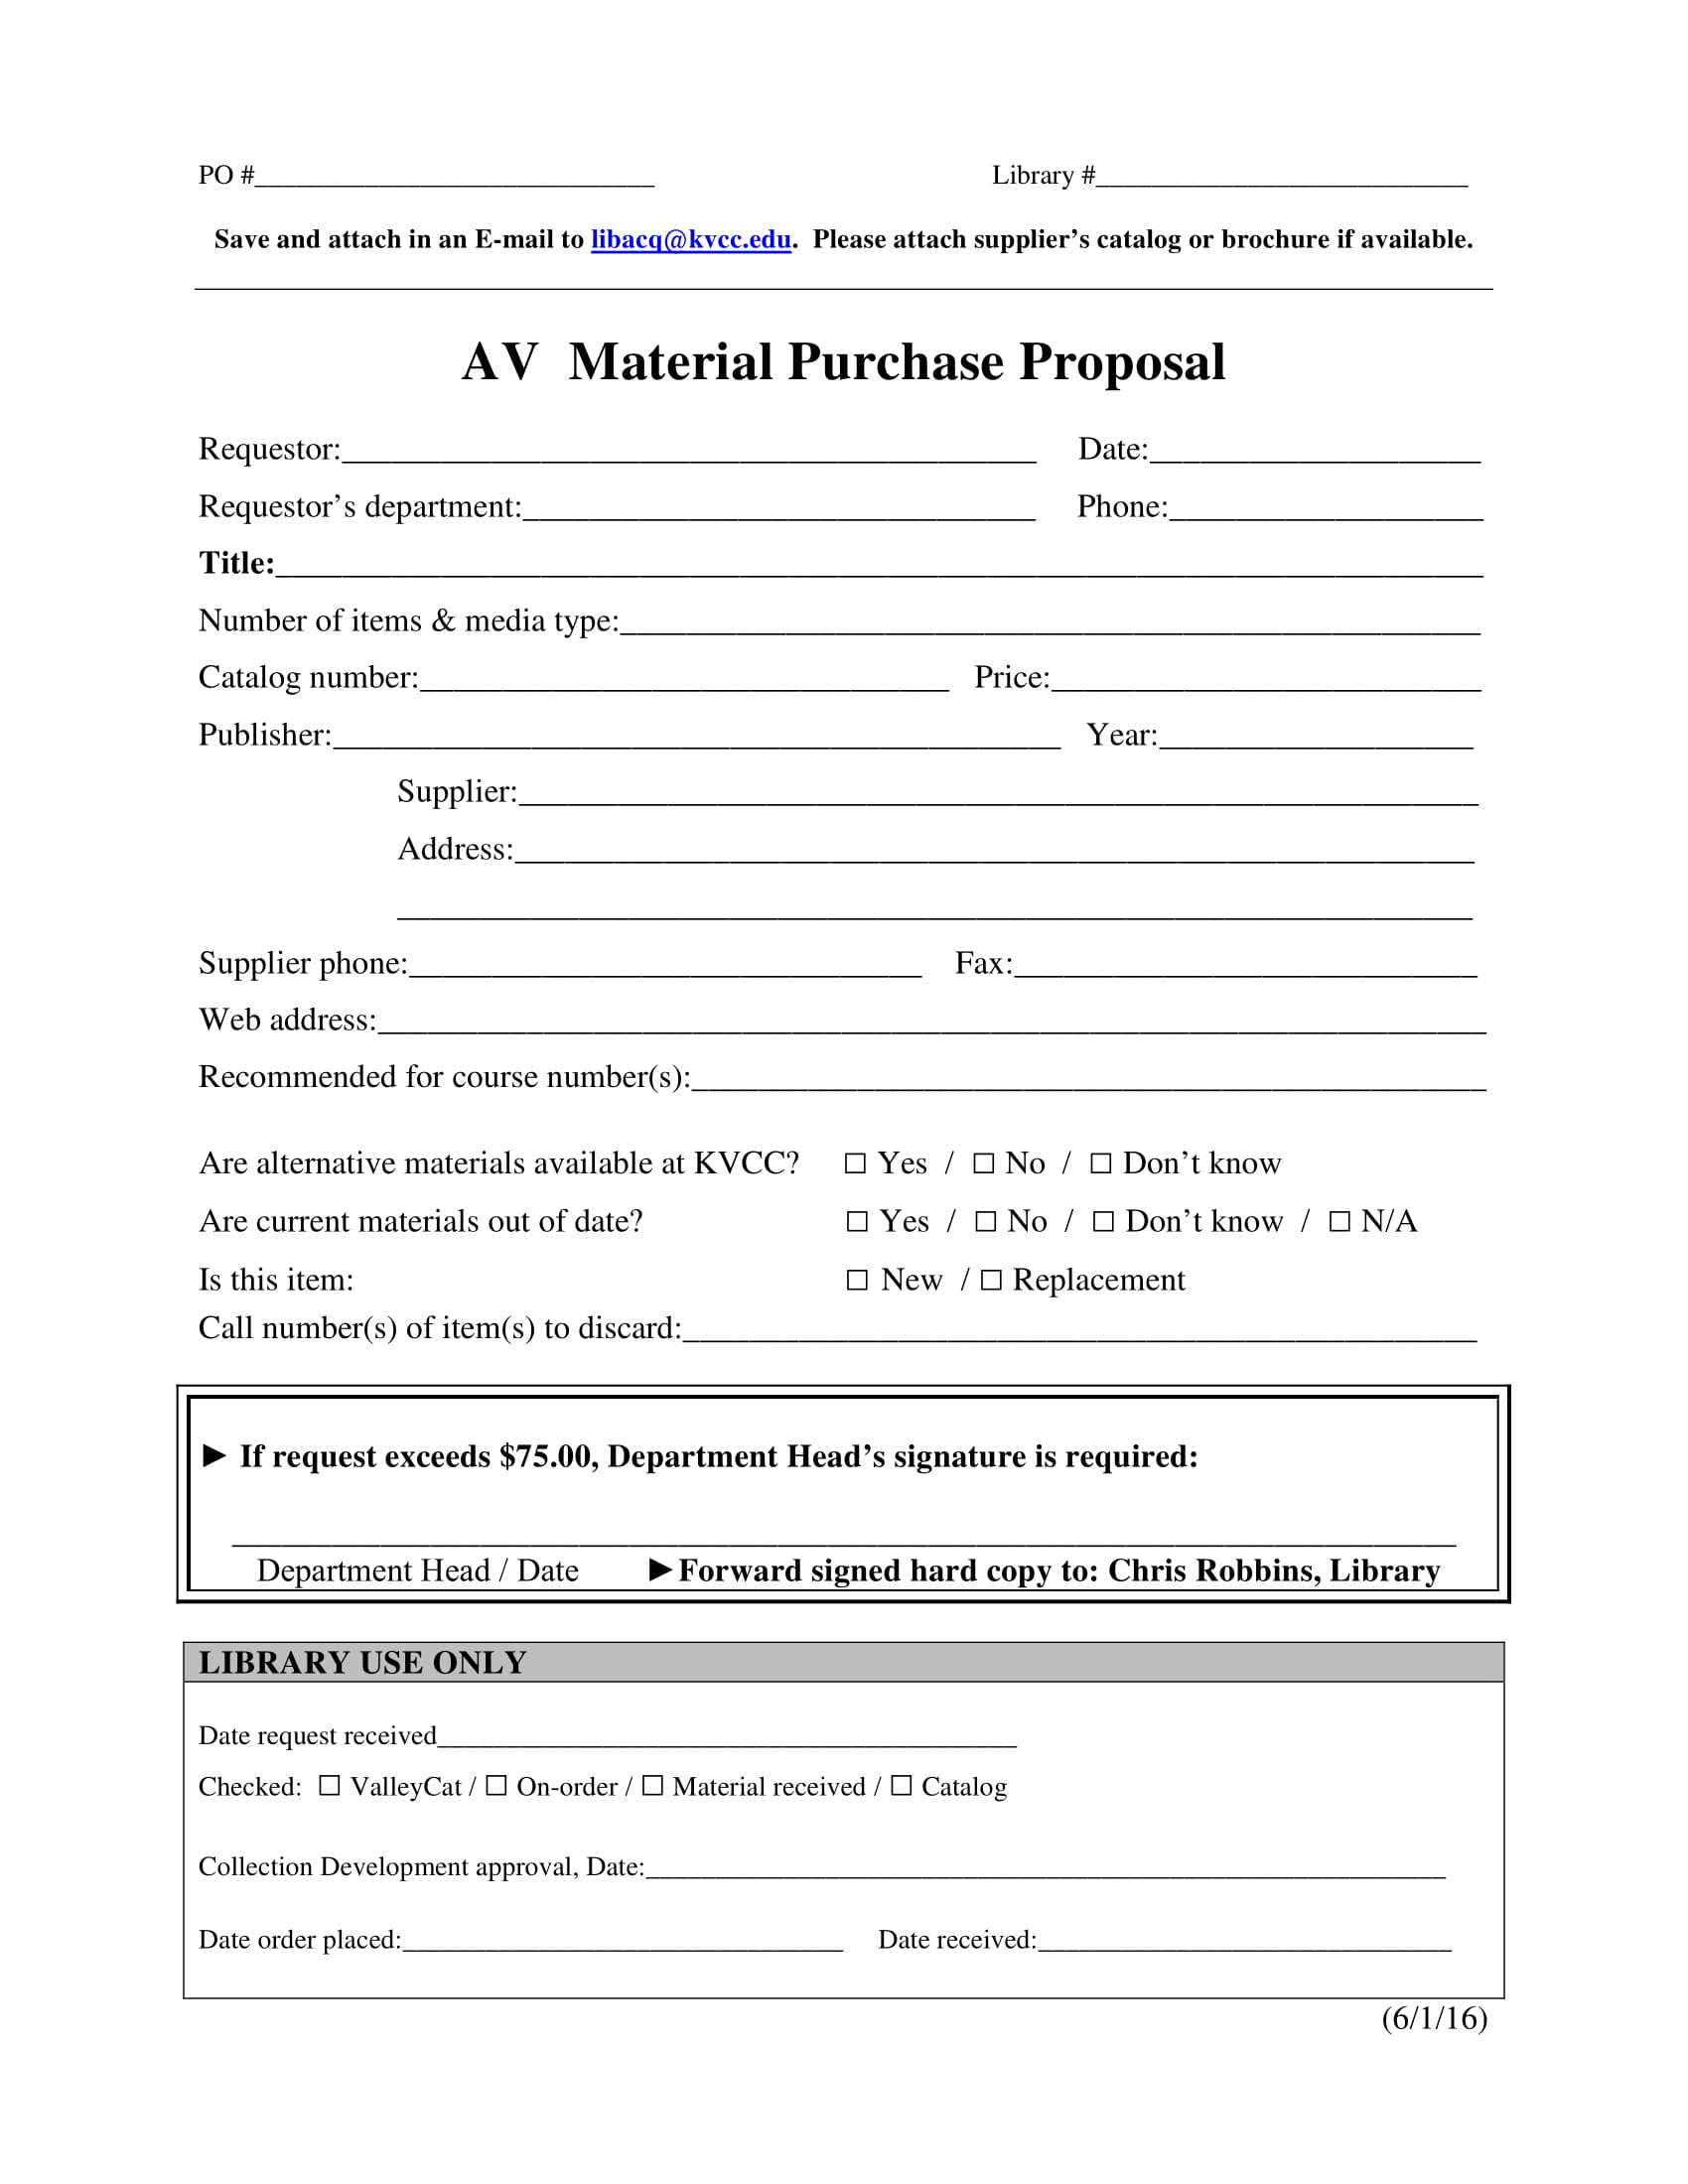 av material purchase proposal form example